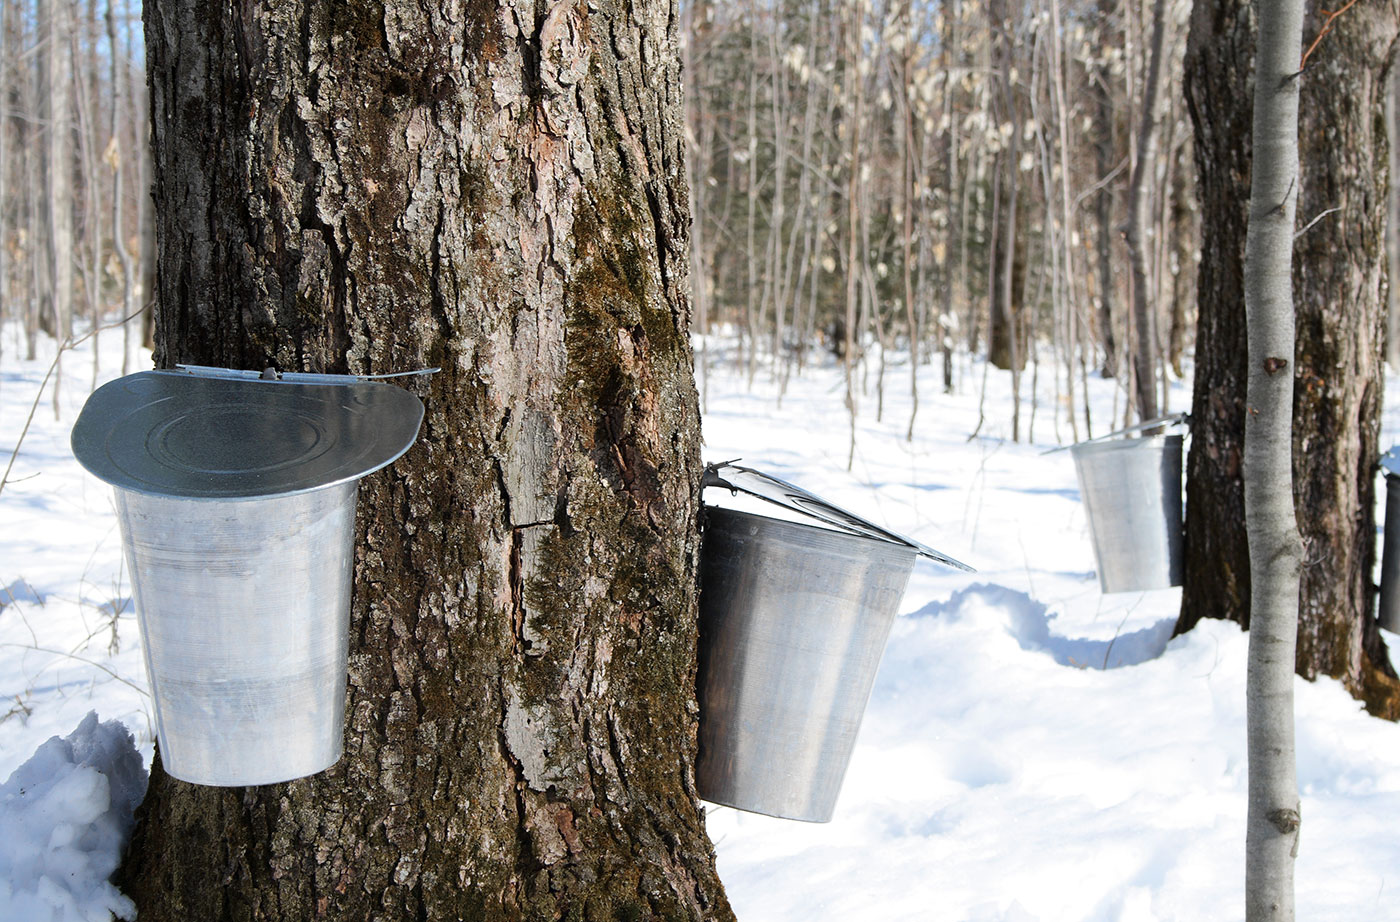 buckets for collecting maple sap from trees